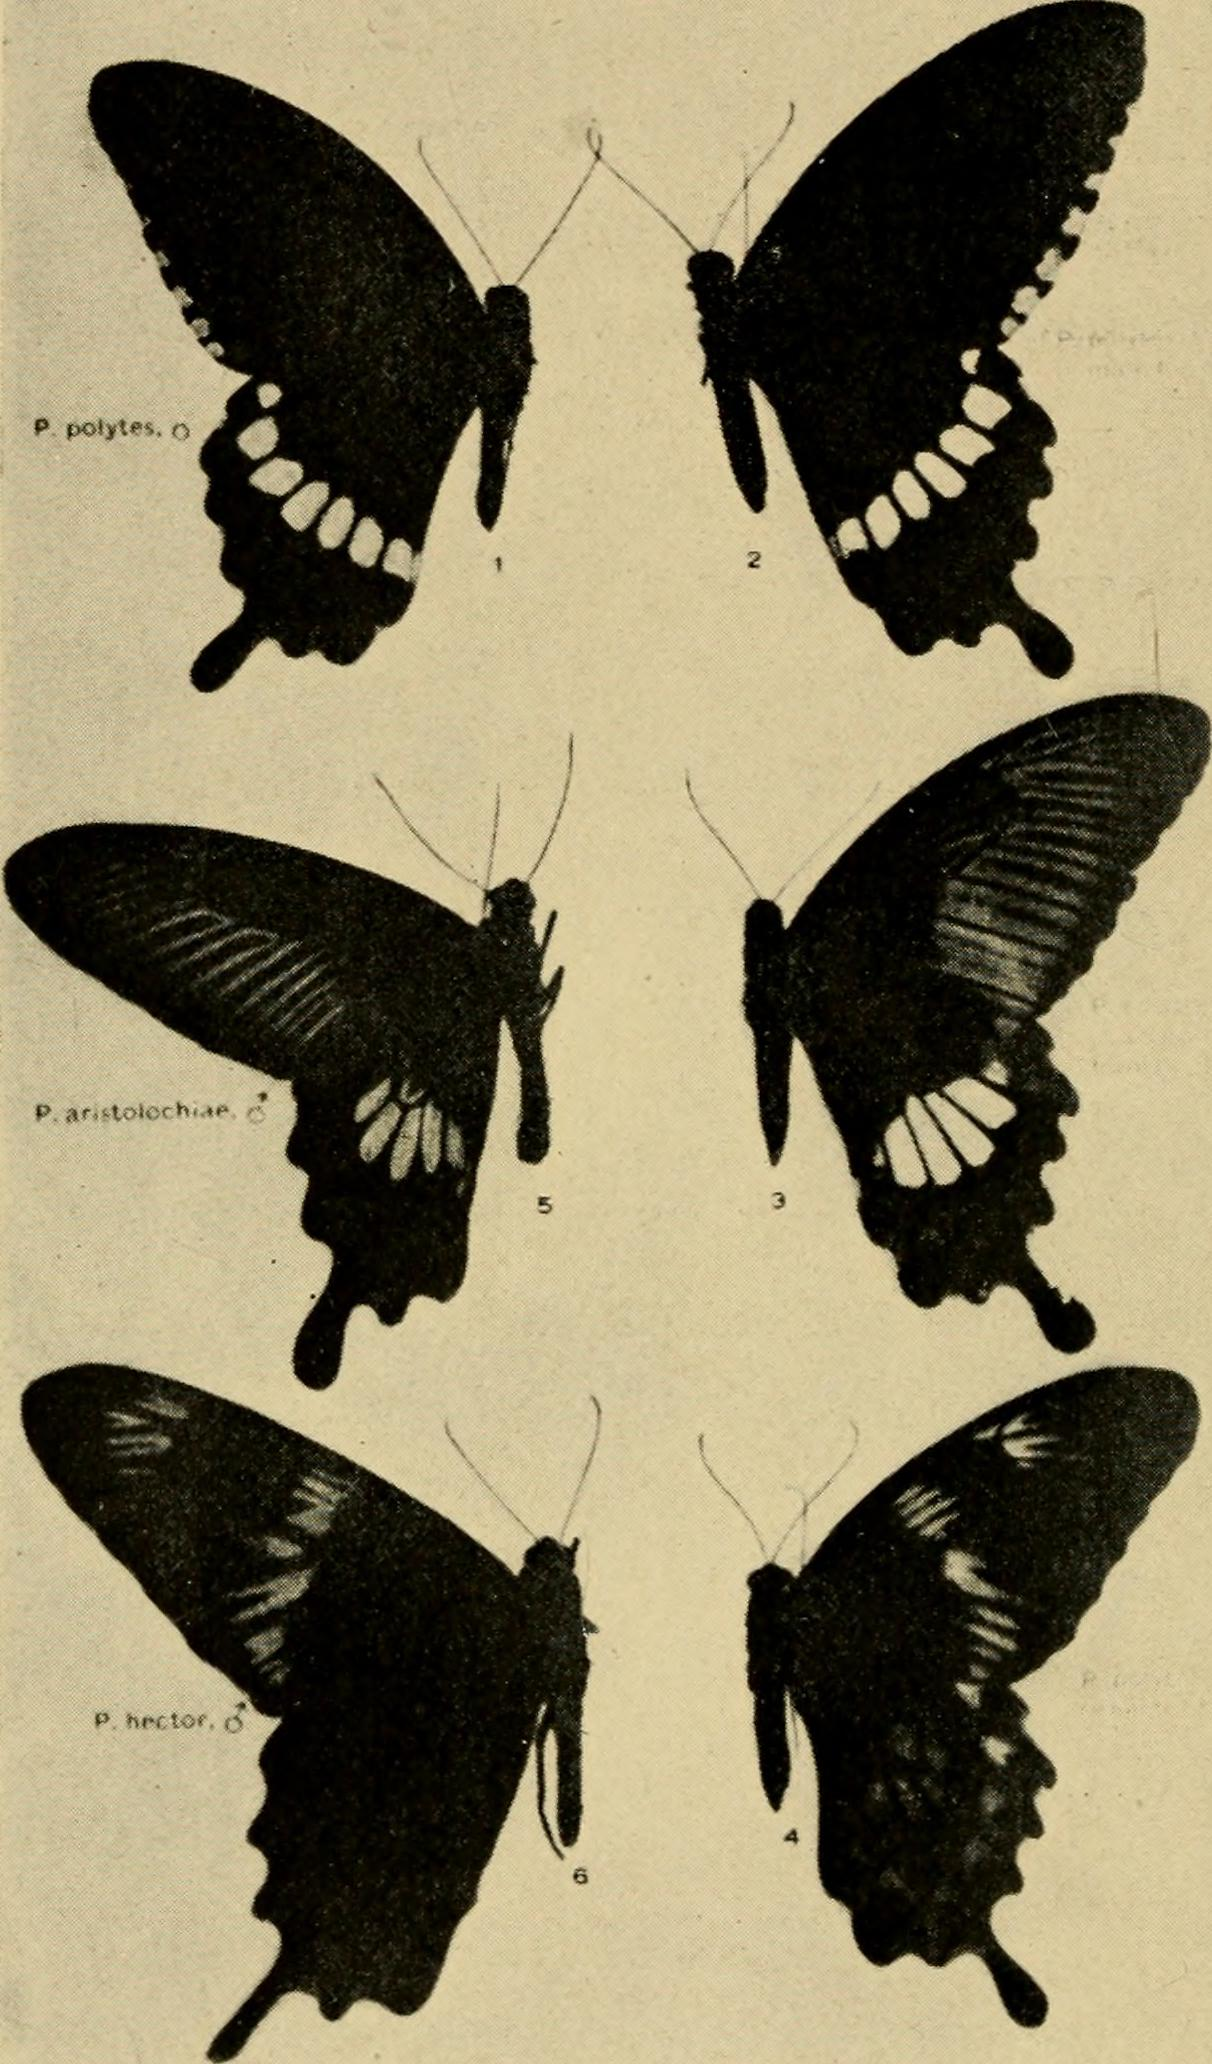 Heredity and sex (1913) (14761666521).jpg English: Identifier: hereditysex00morg (find matches) Title: Heredity and sex Year: 1913 (1910s) Authors: